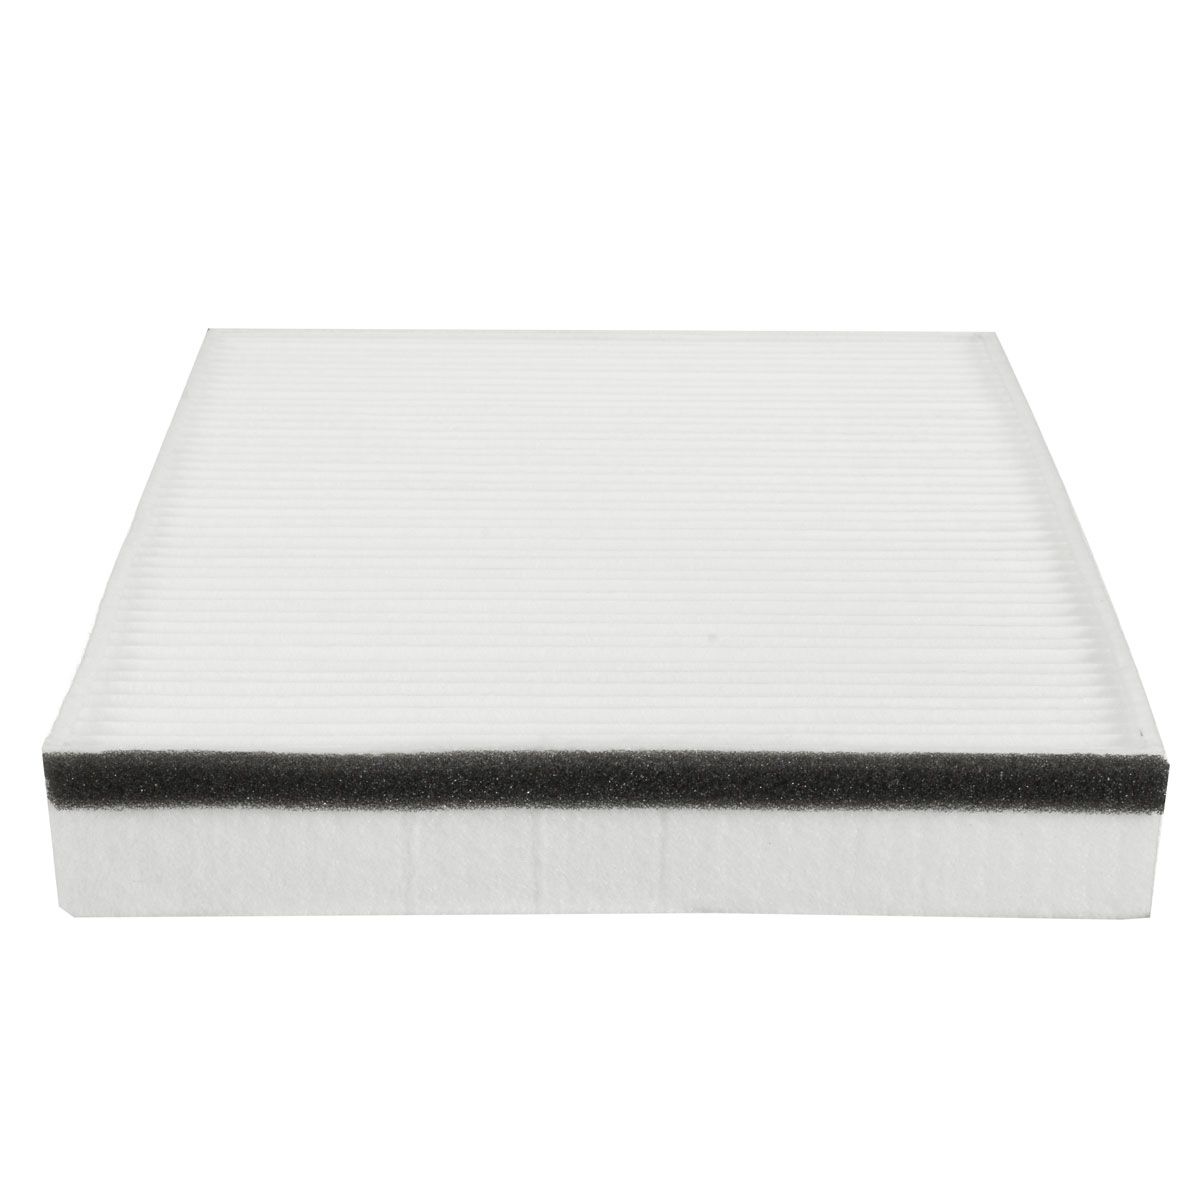 Cabin Air Filter For Ford /C-Max /Focus /Escape /Transit /Connect  /Lincoln MKCCabin Air Filter For Ford /C-Max /Focus /Escape /Transit /Connect  /Lincoln MKC